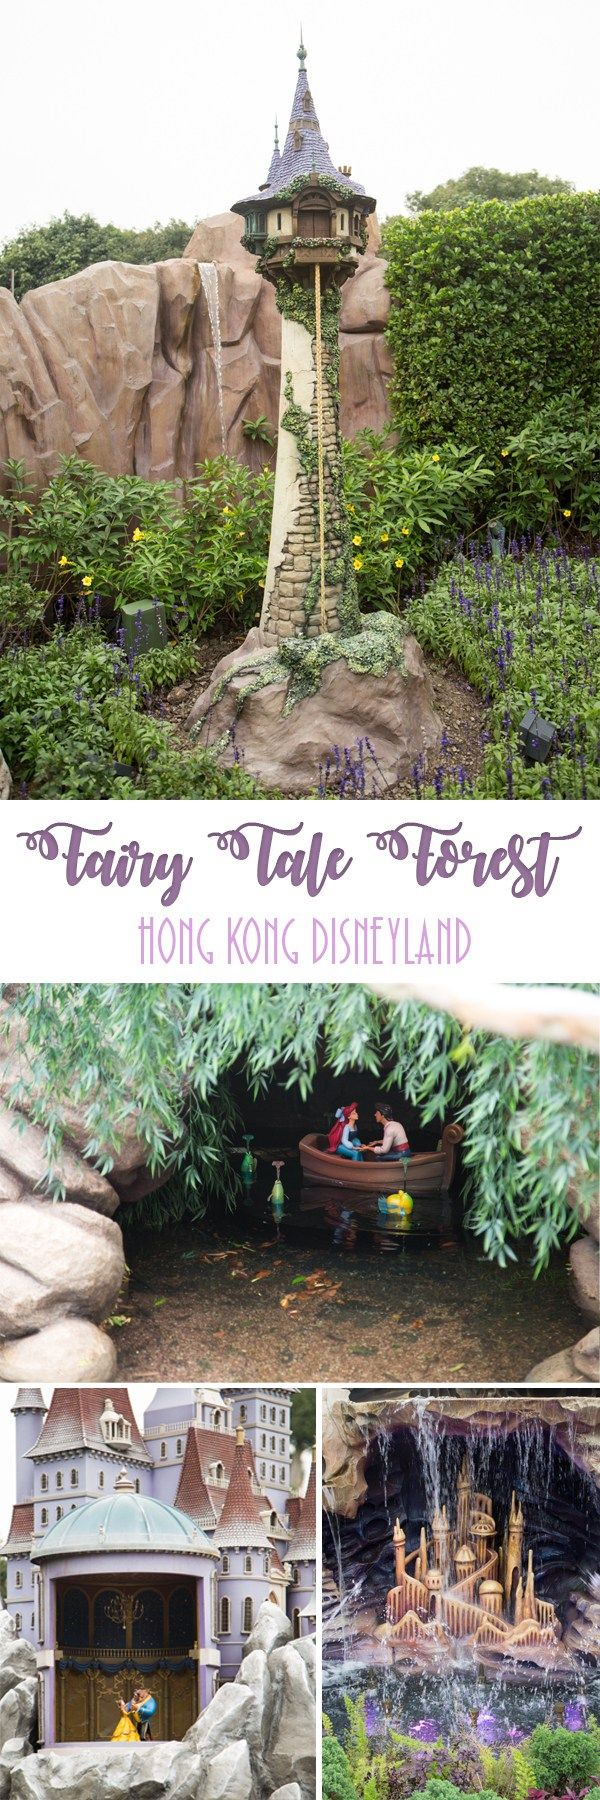 Fairy Tale Forest Fairy Tale Forest is exclusive to Hong Kong Disneyland. You can find it at the entrance of Fantasyland coming from Adventureland or Toy Storyland. Here you can see miniature movie scenes from all your favorite Disney fairy tale stories. ... Read More